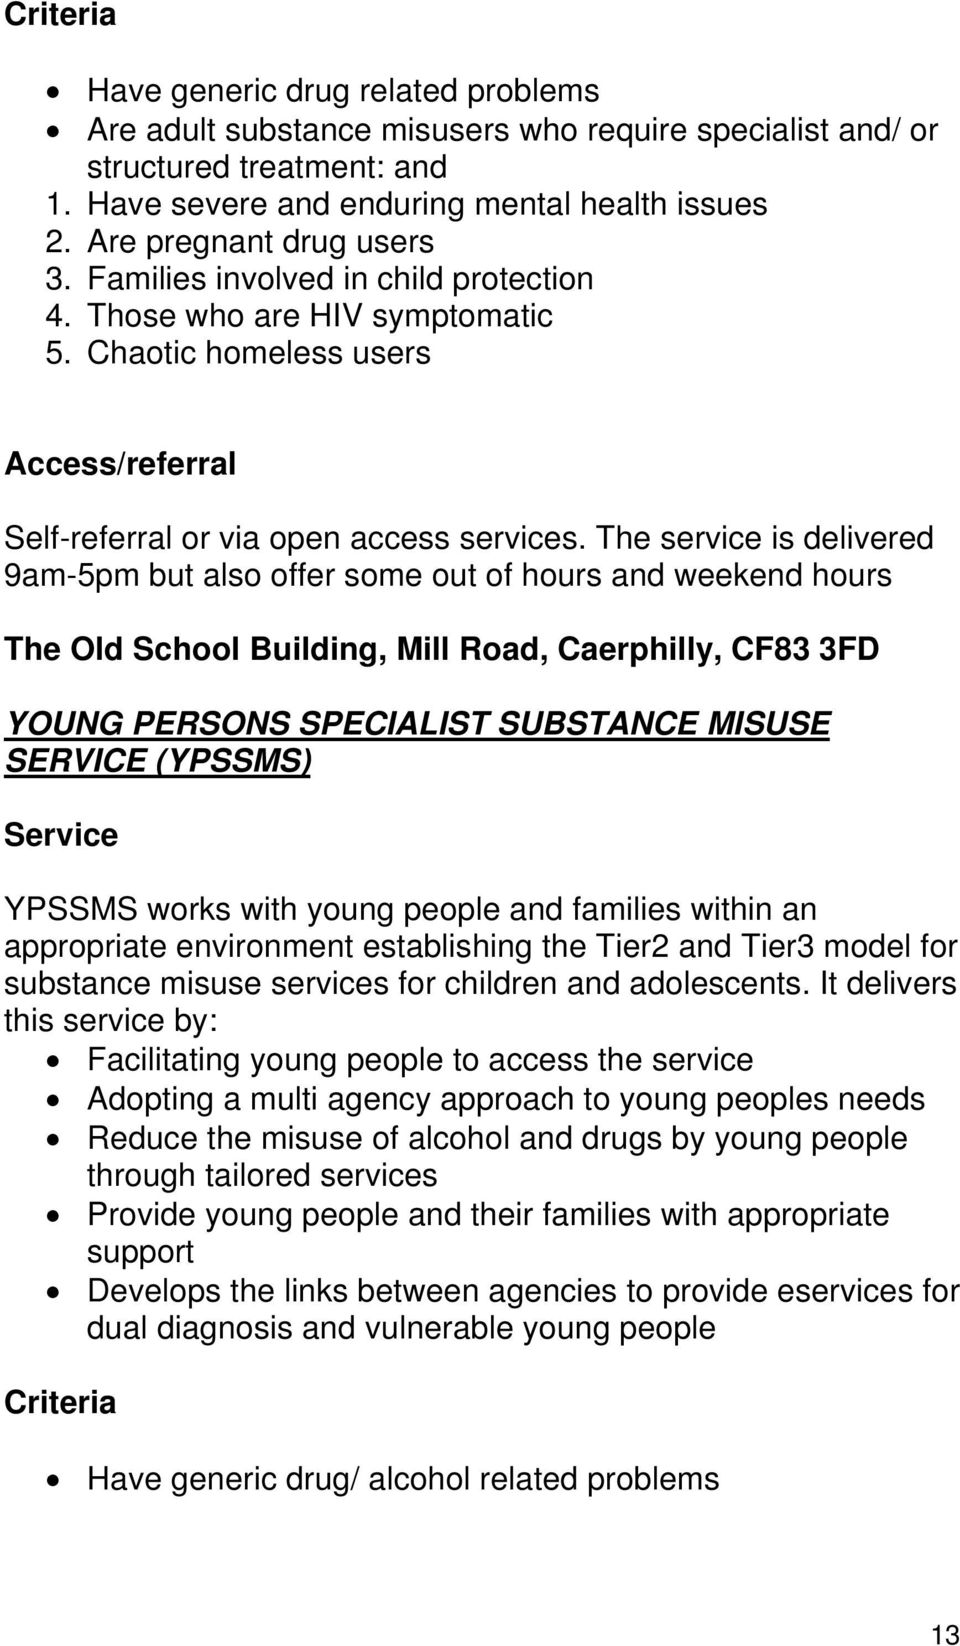 The service is delivered 9am-5pm but also offer some out of hours and weekend hours The Old School Building, Mill Road, Caerphilly, CF83 3FD YOUNG PERSONS SPECIALIST SUBSTANCE MISUSE SERVICE (YPSSMS)